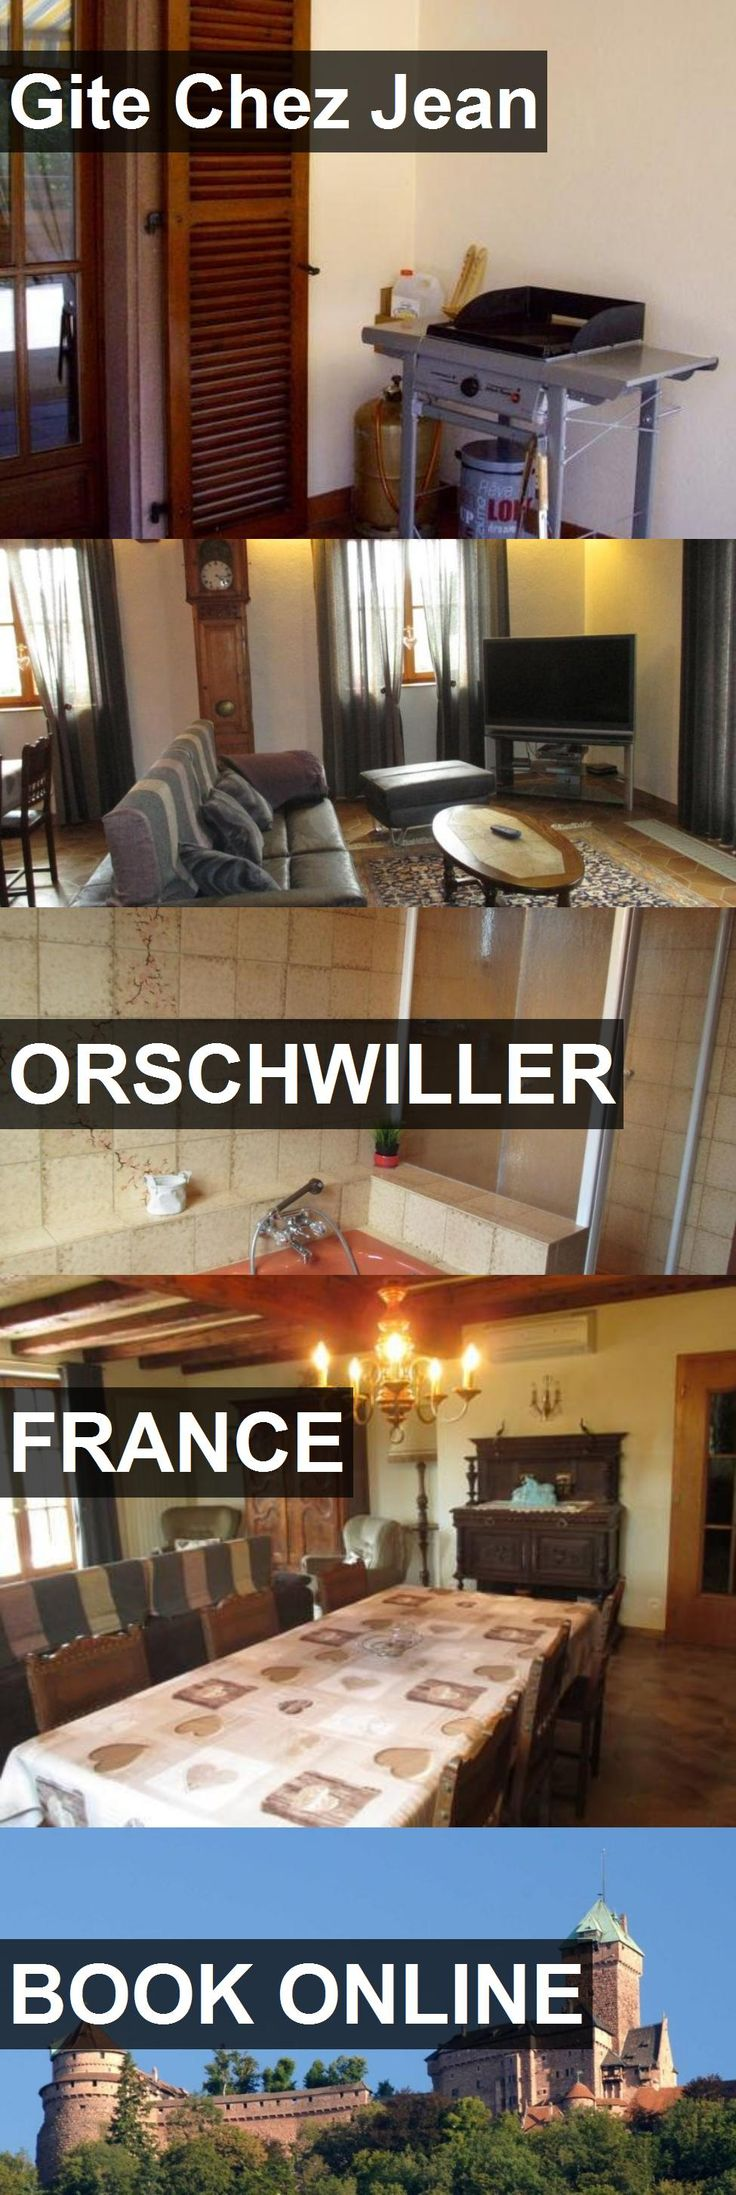 Hotel Gite Chez Jean in Orschwiller, France. For more information, photos, reviews and best prices please follow the link. #France #Orschwiller #GiteChezJean #hotel #travel #vacation